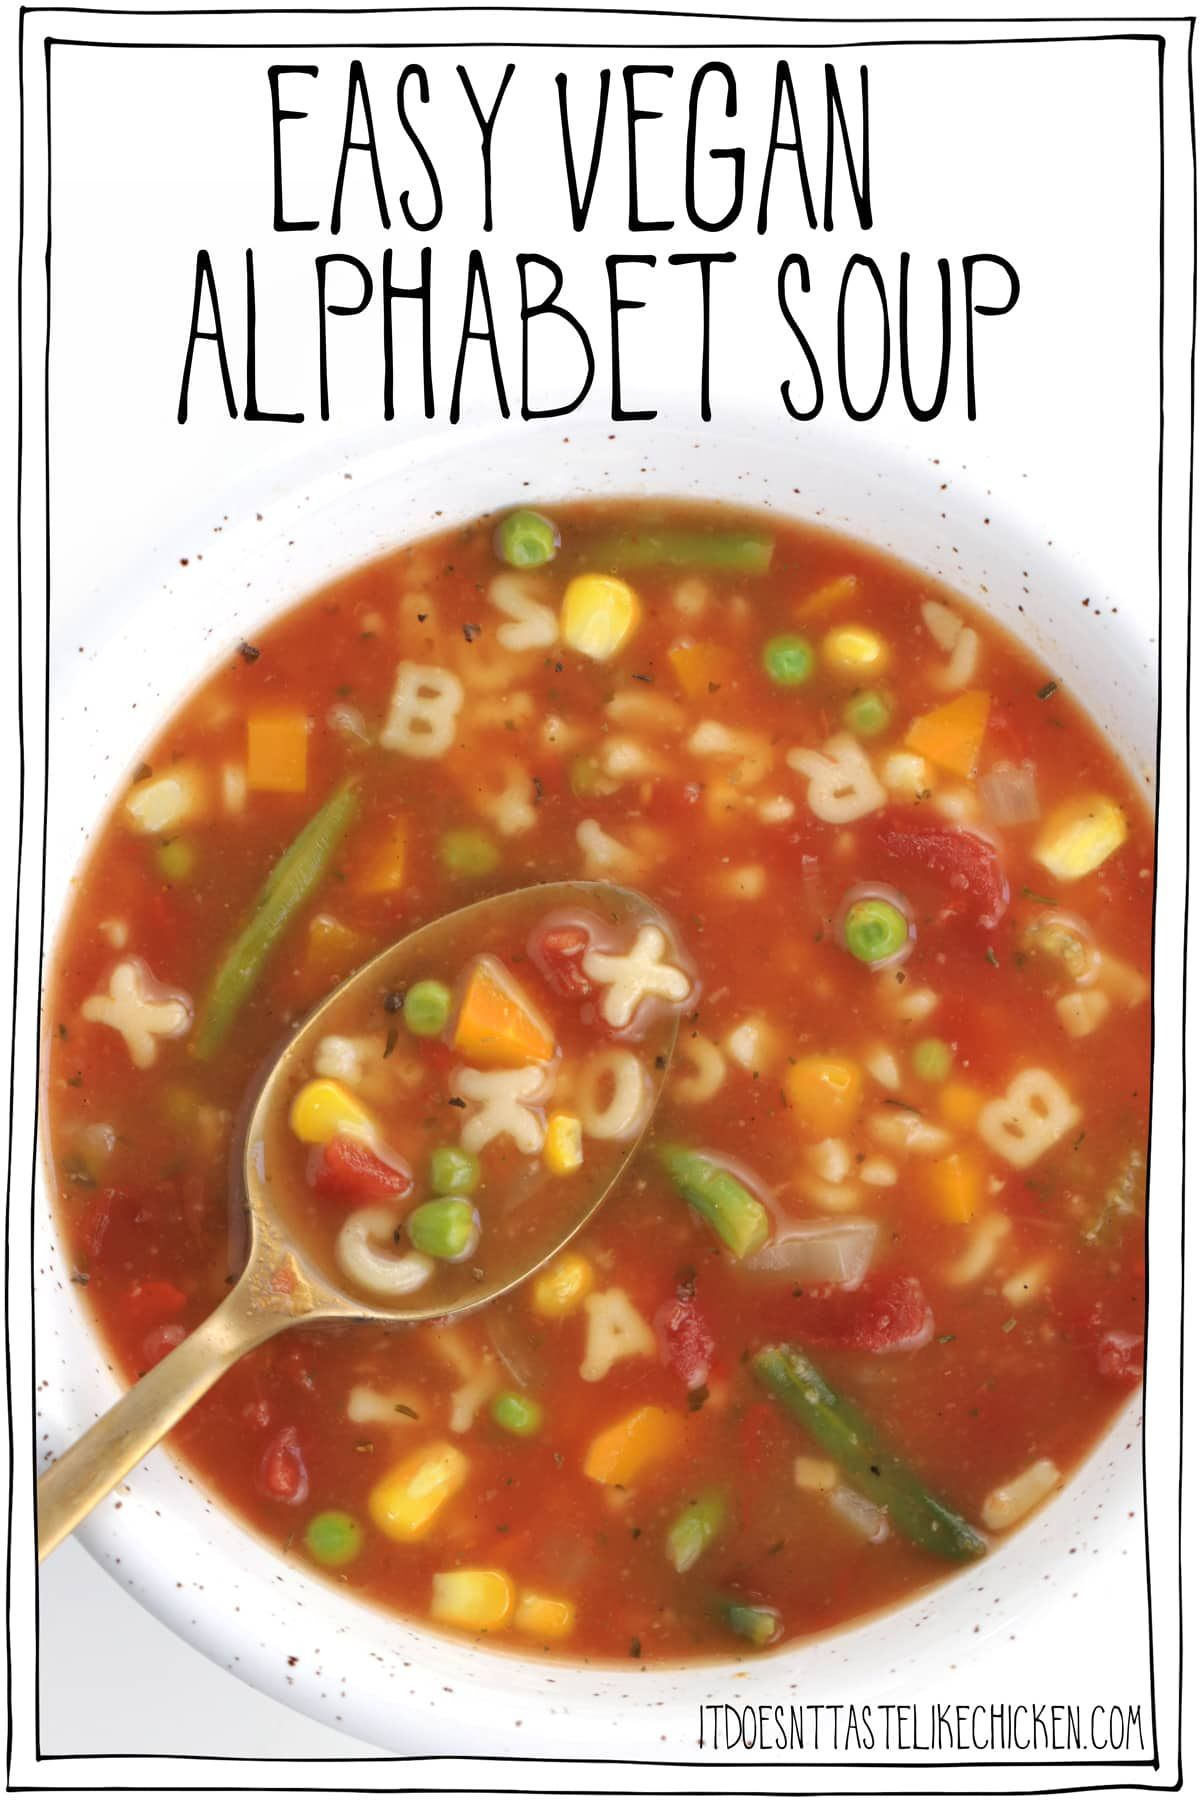 Easy Vegan Alphabet Soup Recipe In 2020 Vegan Soup Recipes Easy Vegan Homemade Soup Recipe